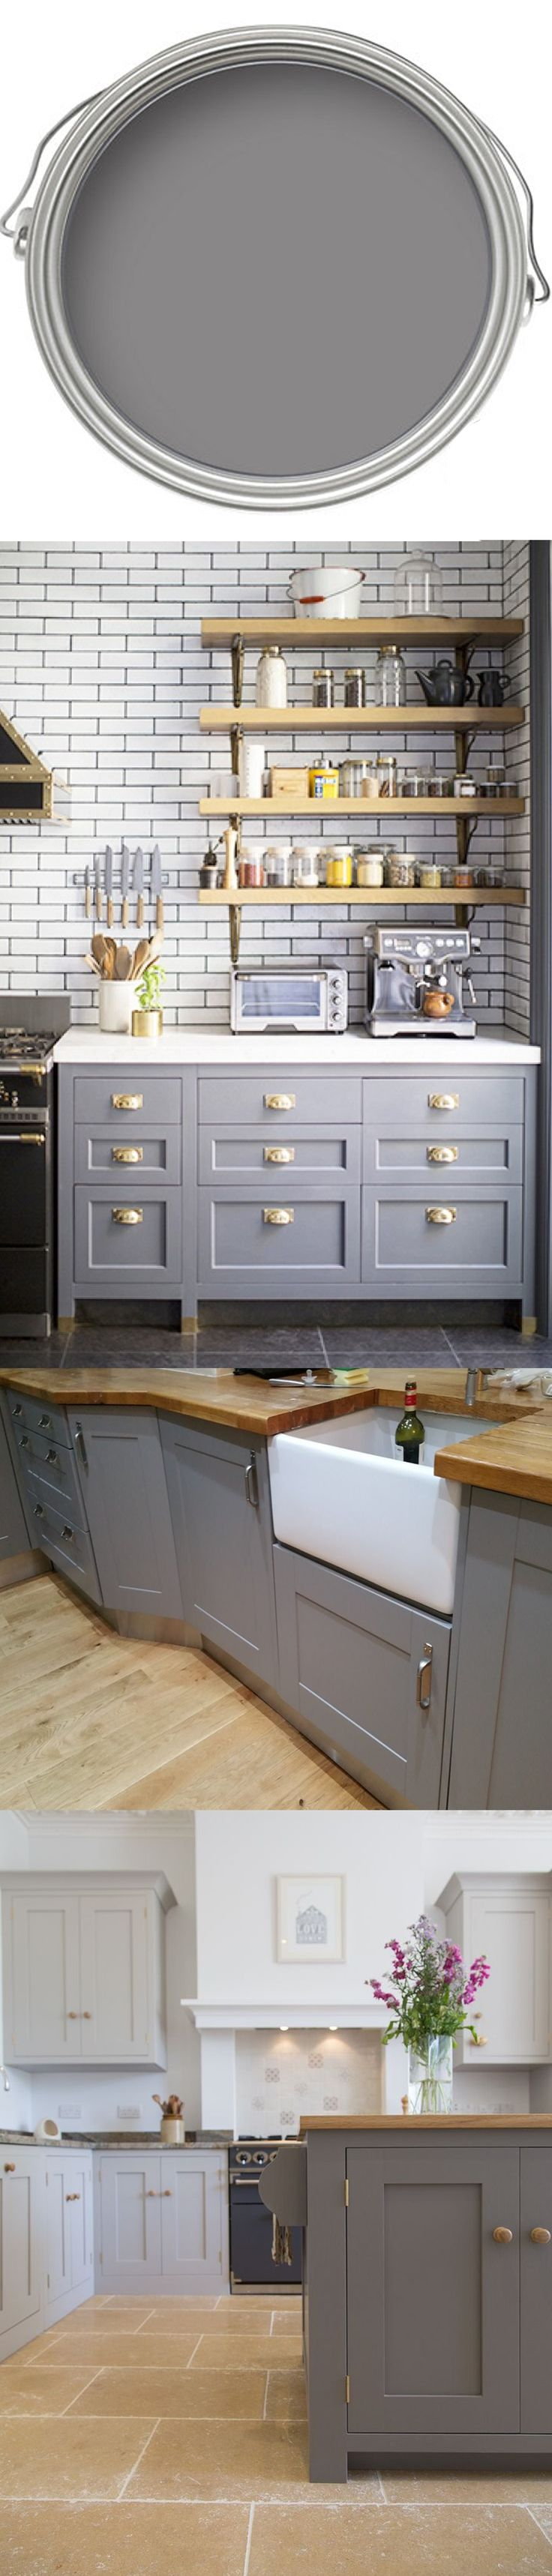 A smart selection for wooden cabinet frontals or an accent wall, Mole's Breathe by Farrow & Ball creates a soft and moody atmosphere, evoking the sophistication of grey palettes without being cold. This is the perfect pick for kitchen islands. http://www.deterra-kitchens.co.uk/blog/get-the-look-natures-finest/